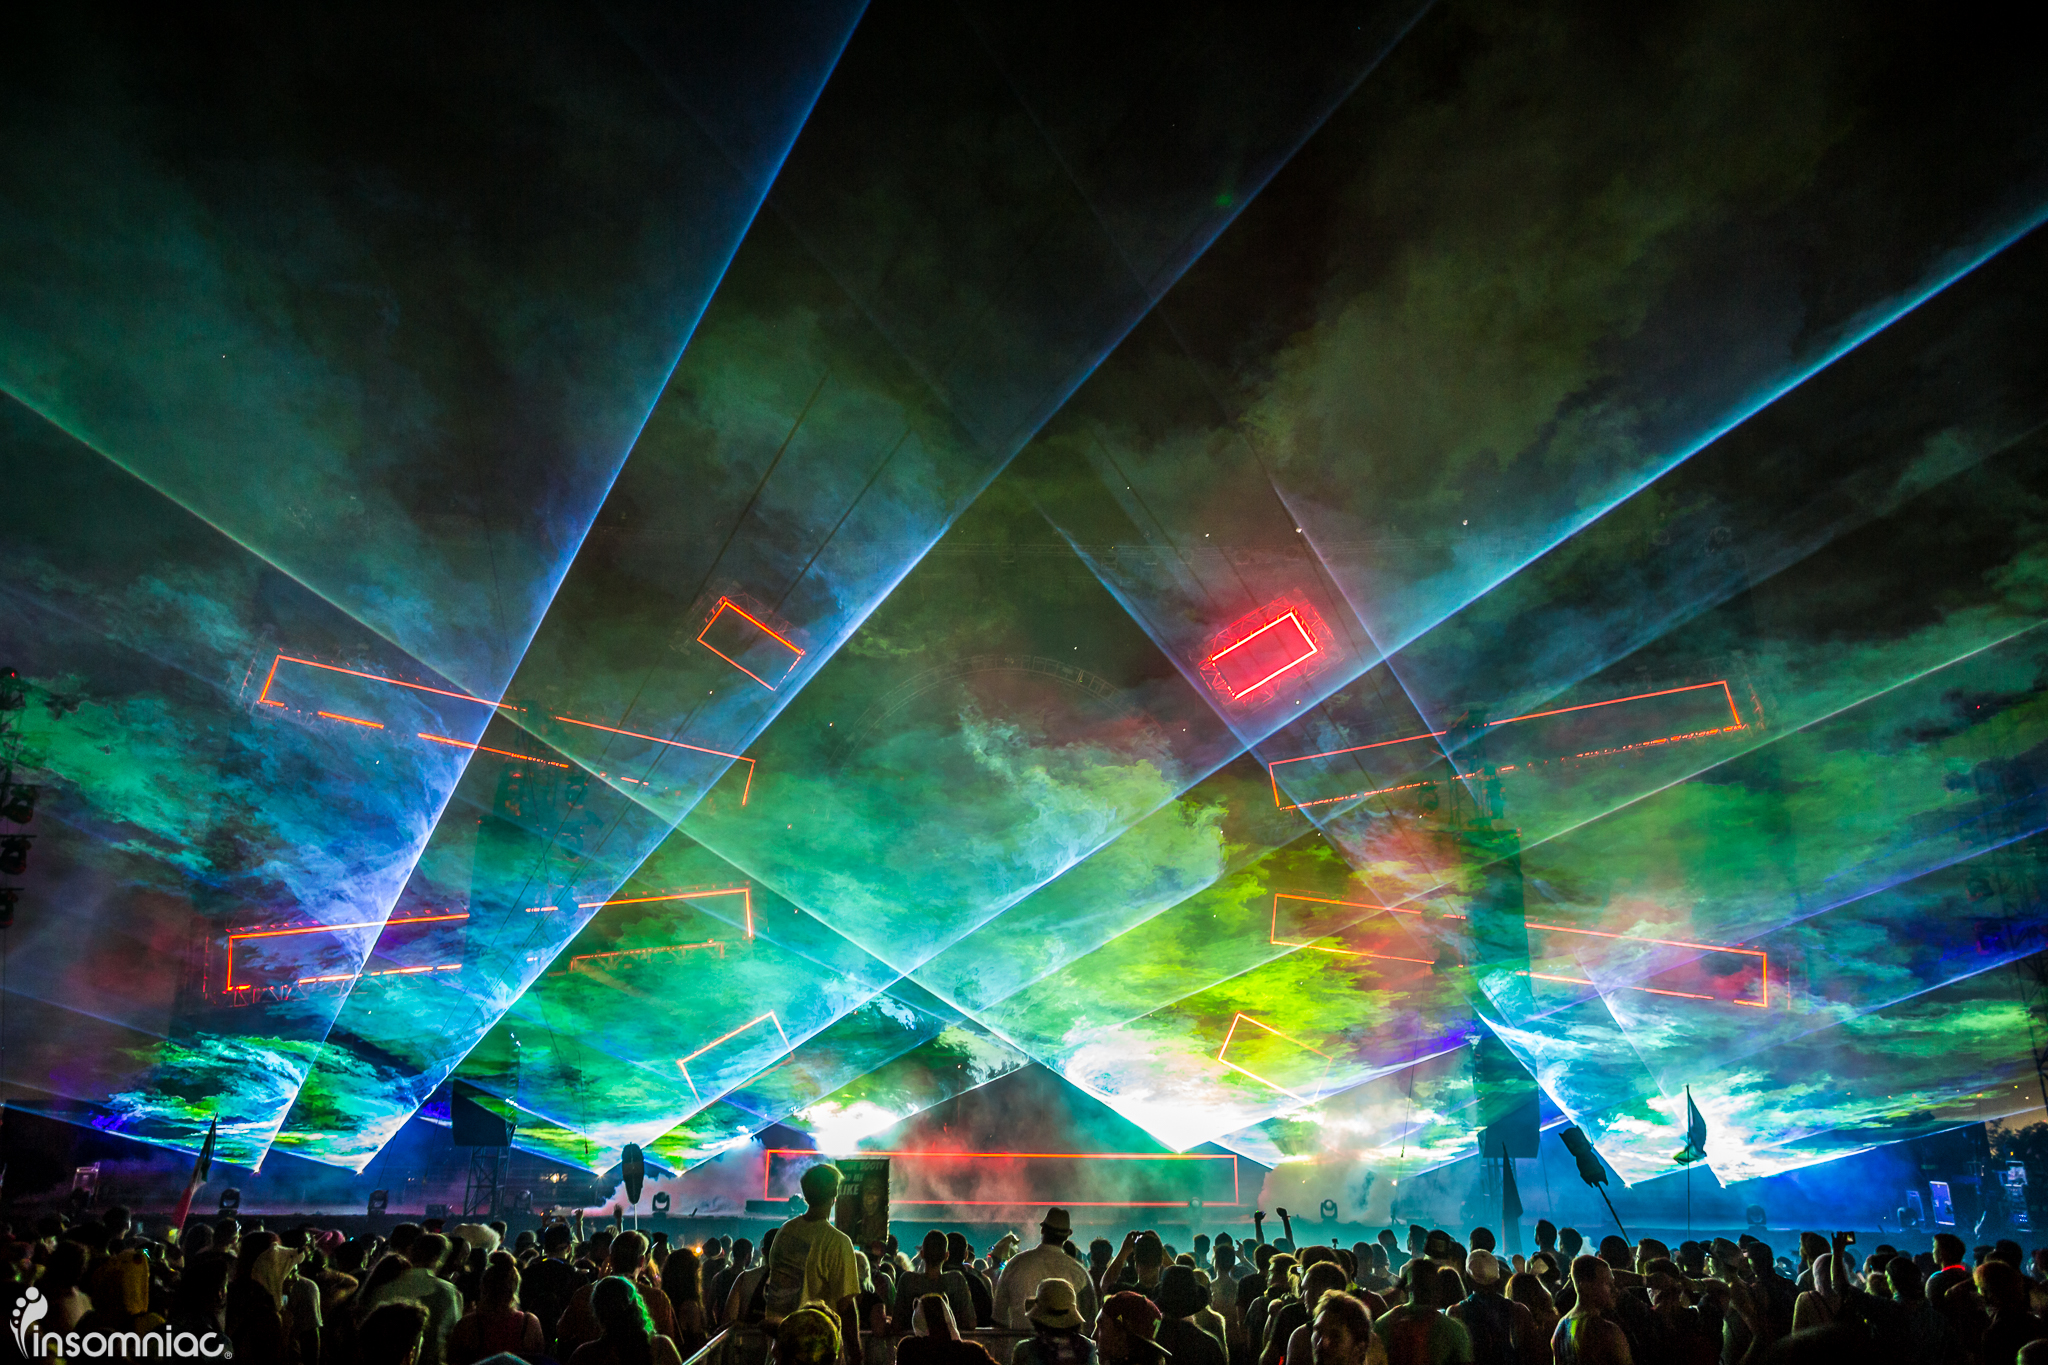 nocturnal_2015_iwally_alivecoverage-17.jpg